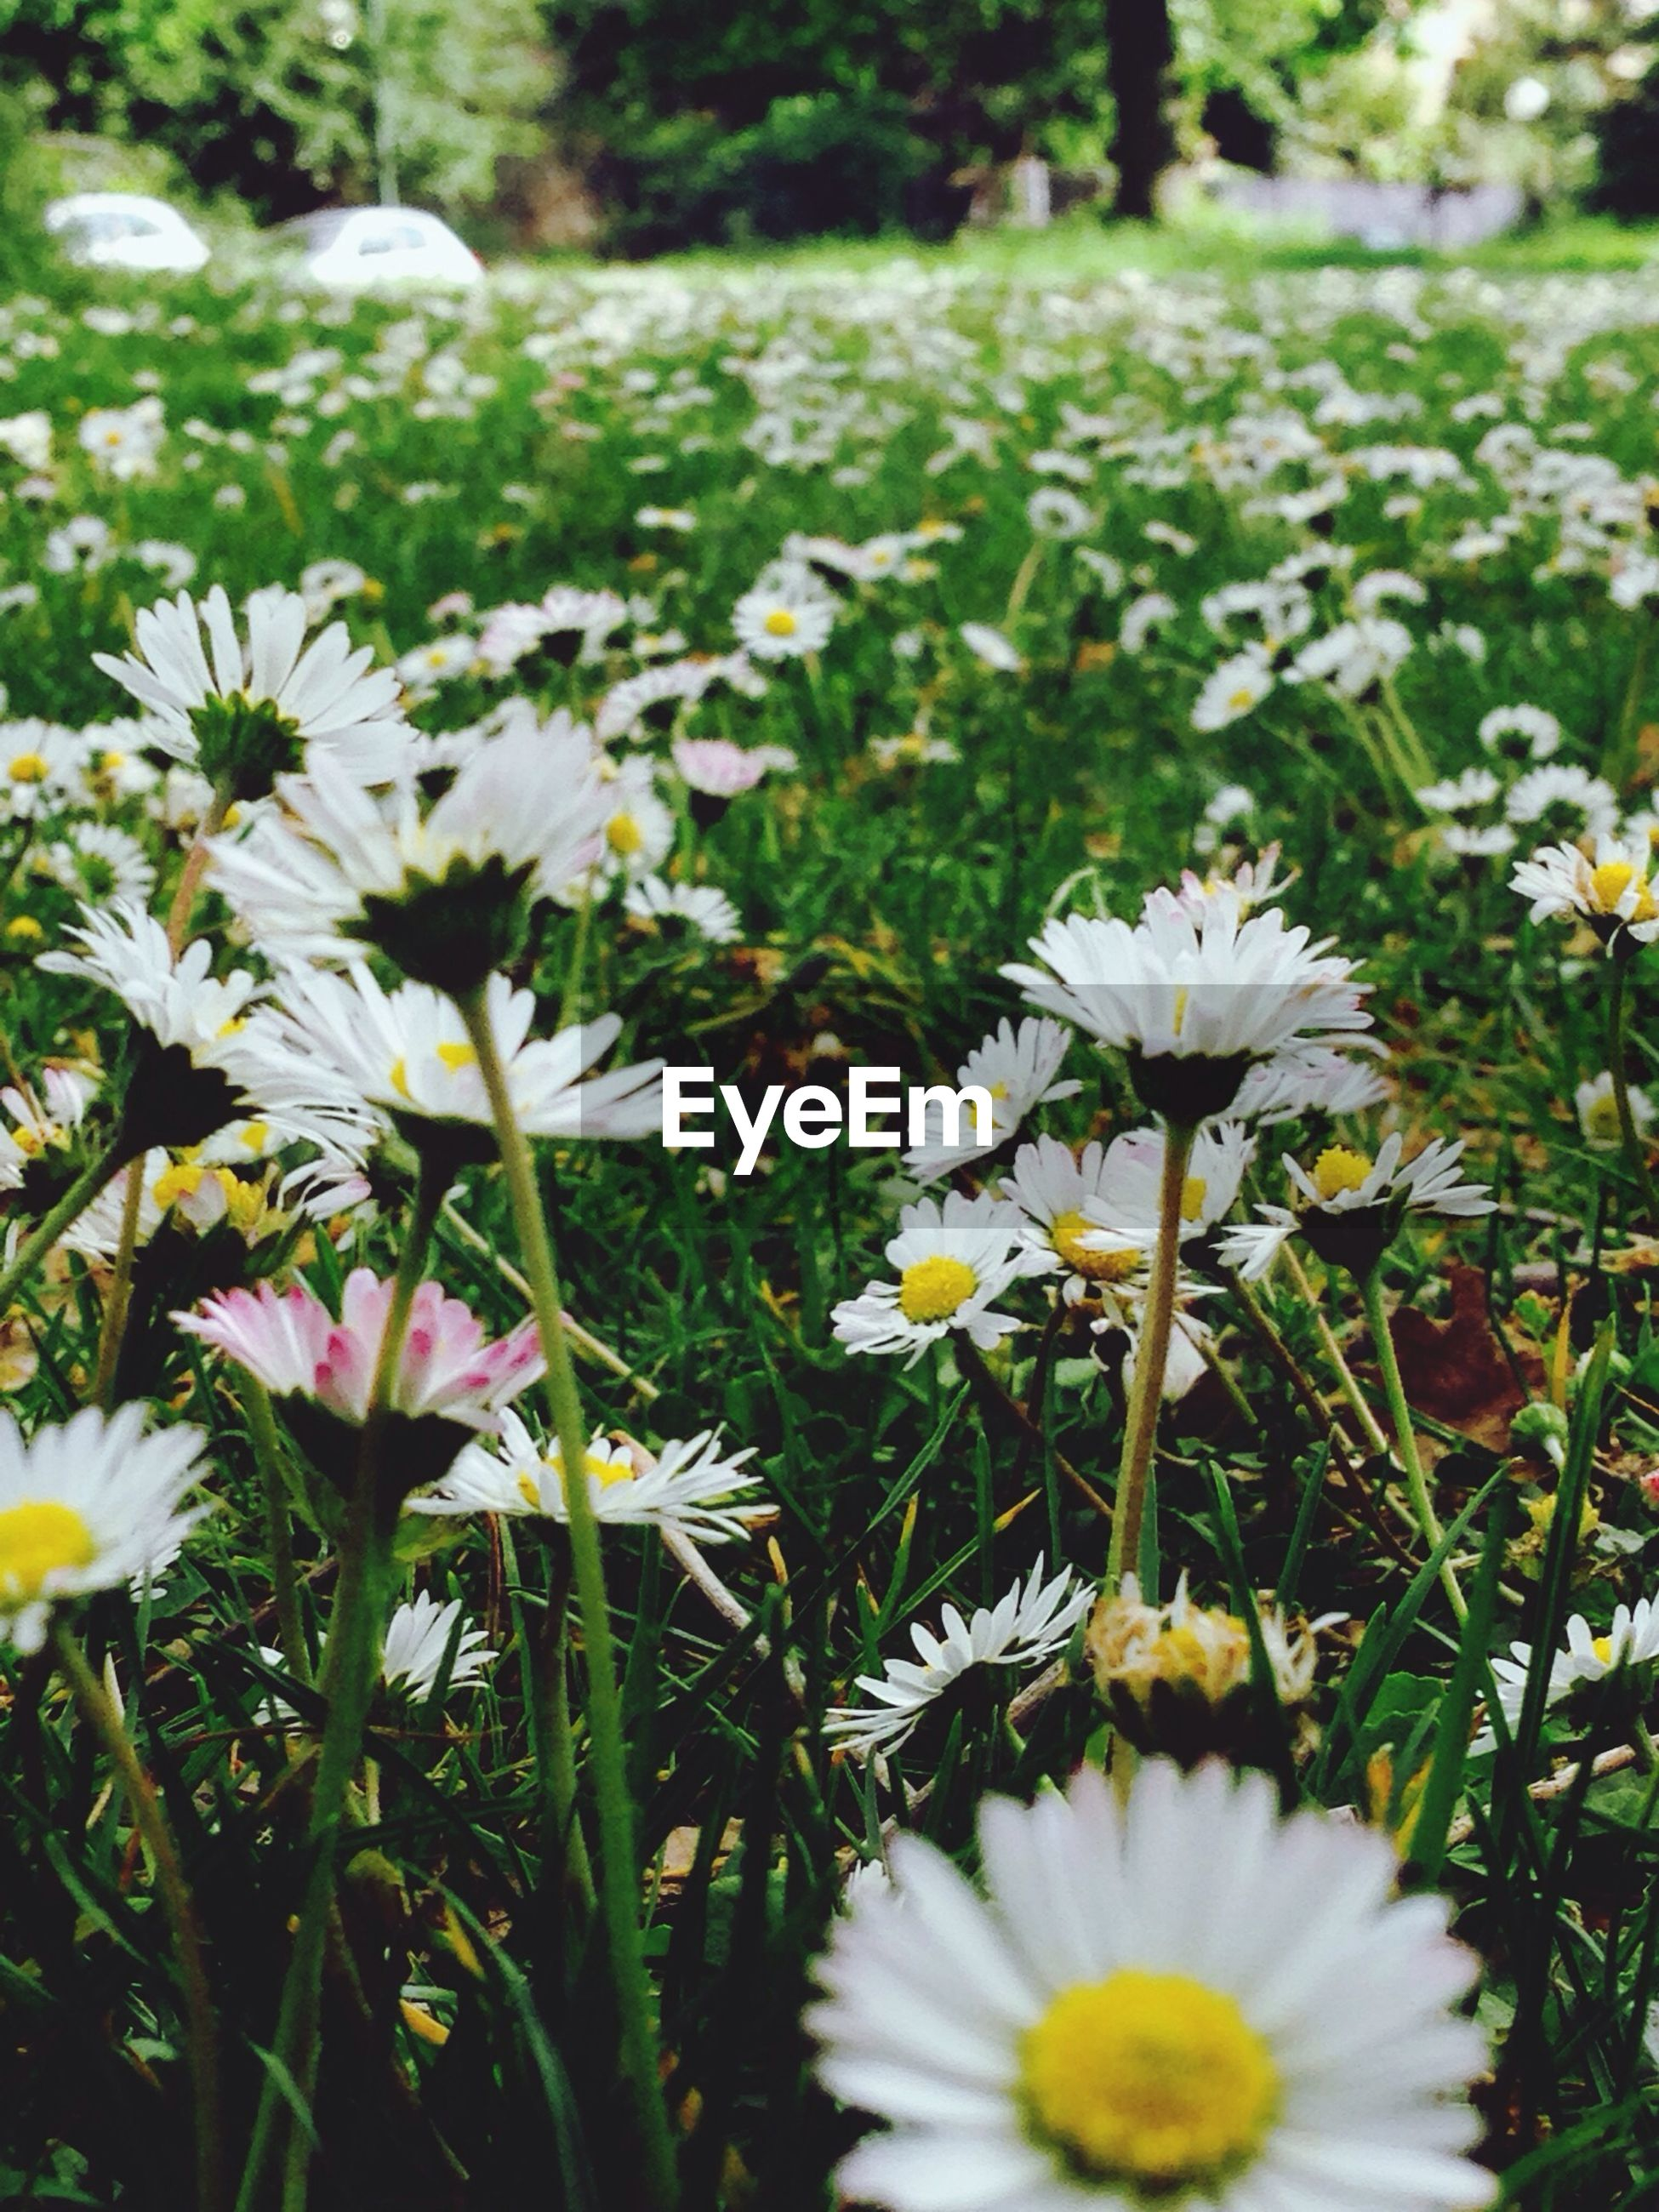 flower, freshness, fragility, growth, petal, white color, beauty in nature, flower head, blooming, field, nature, daisy, plant, focus on foreground, in bloom, grass, stem, wildflower, green color, blossom